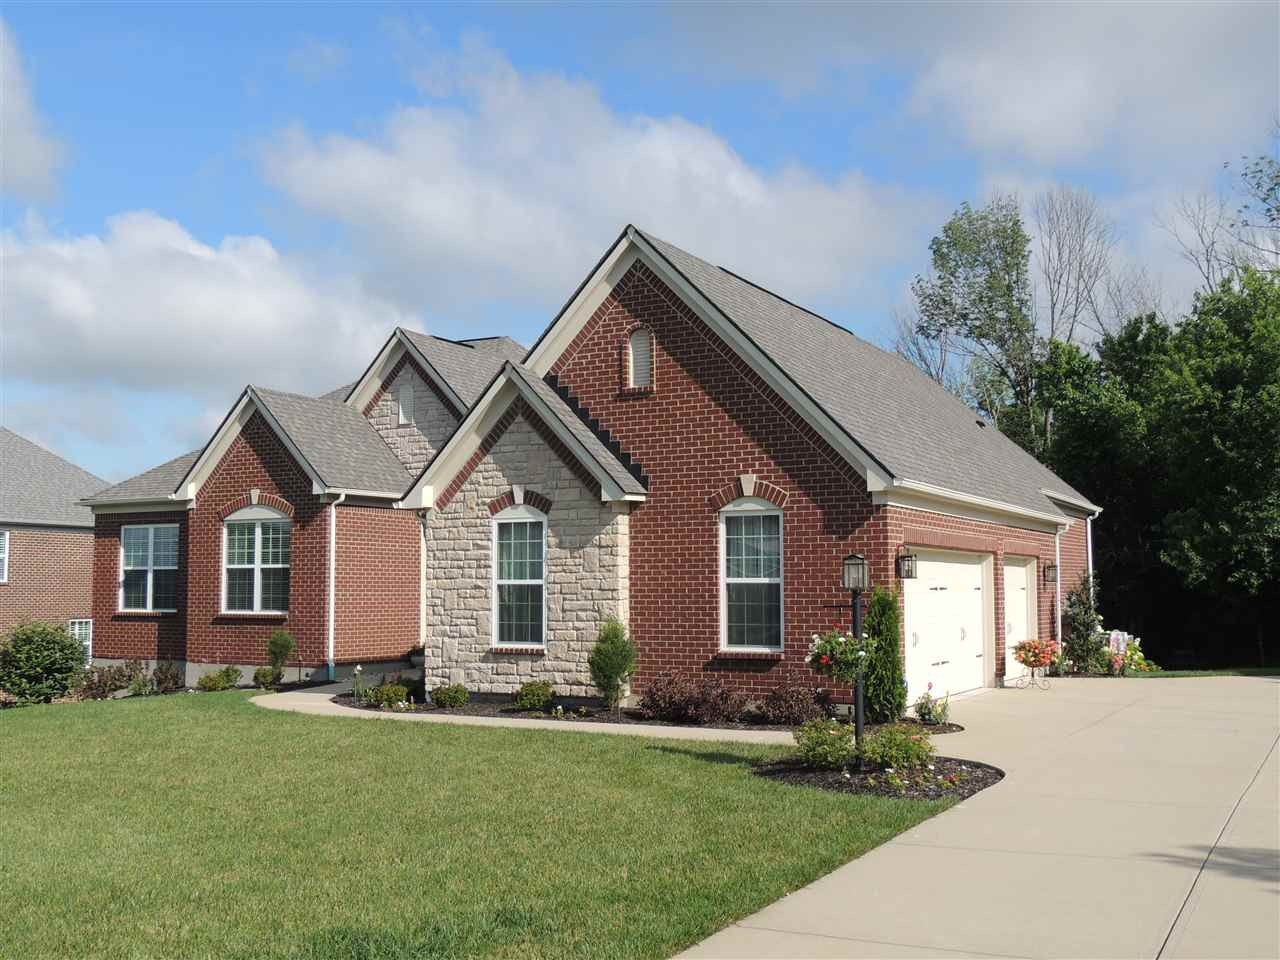 Photo 2 for 2578 Twin Hills Ct Union, KY 41091